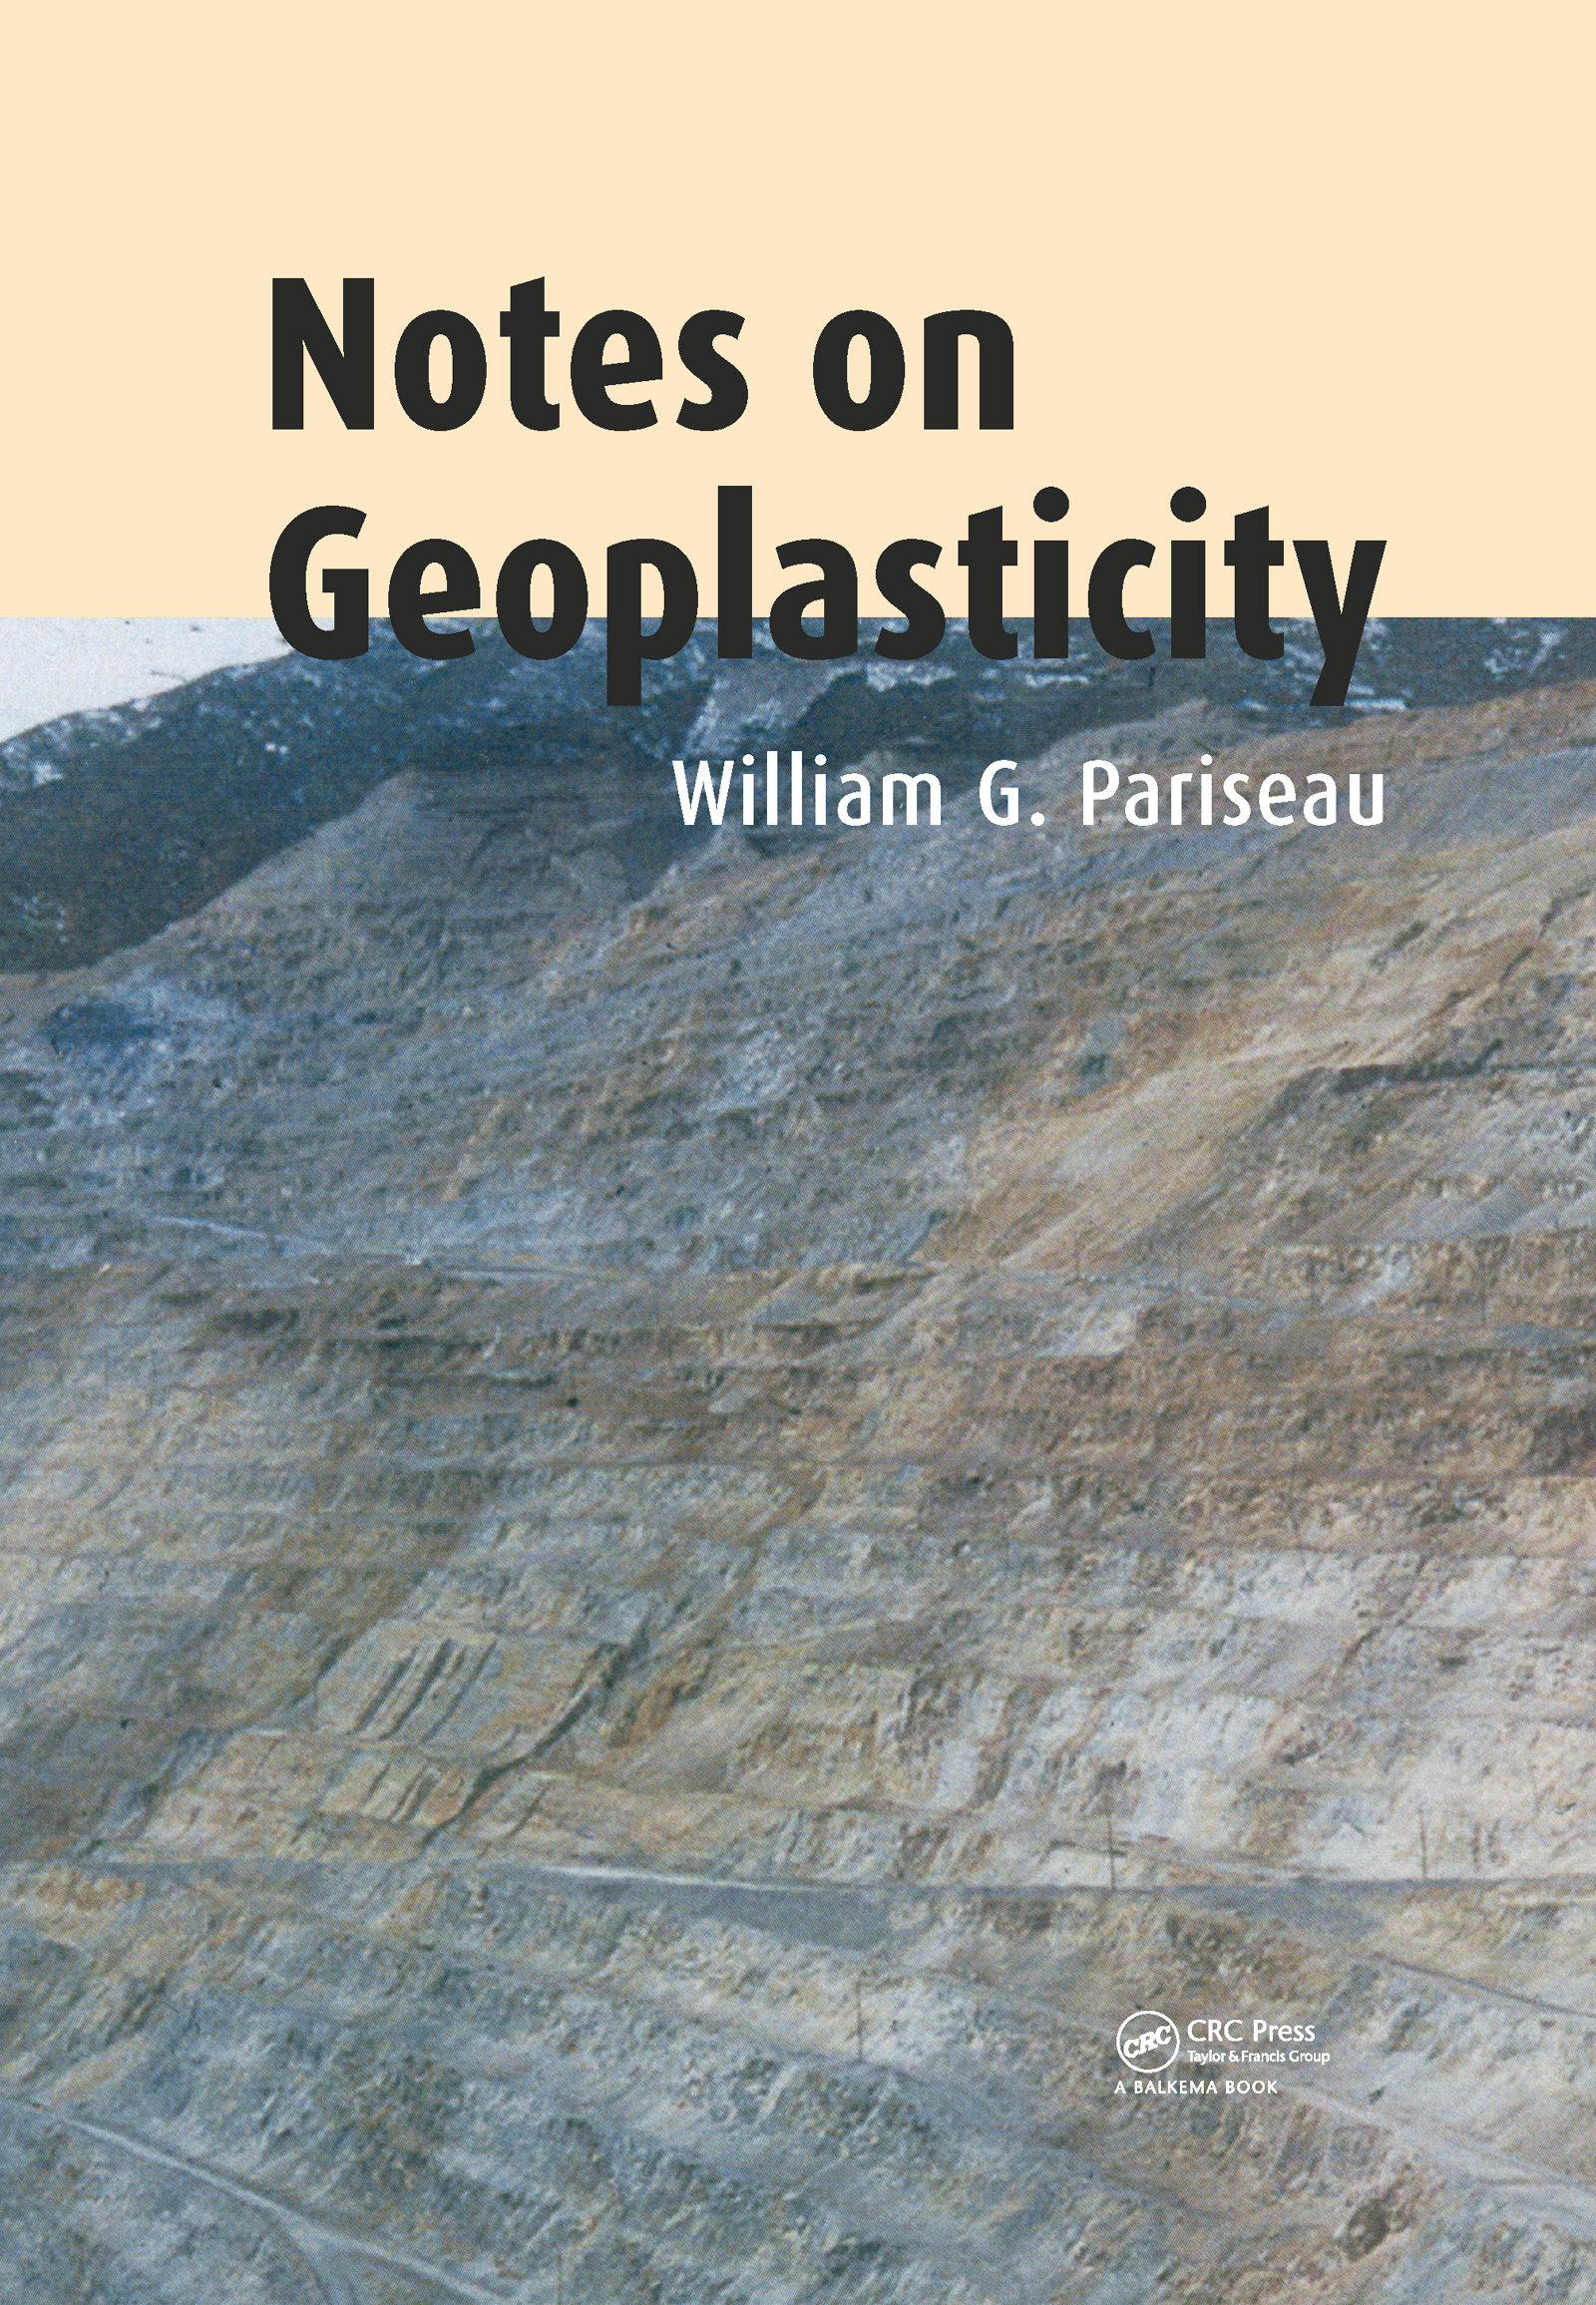 Notes on Geoplasticity